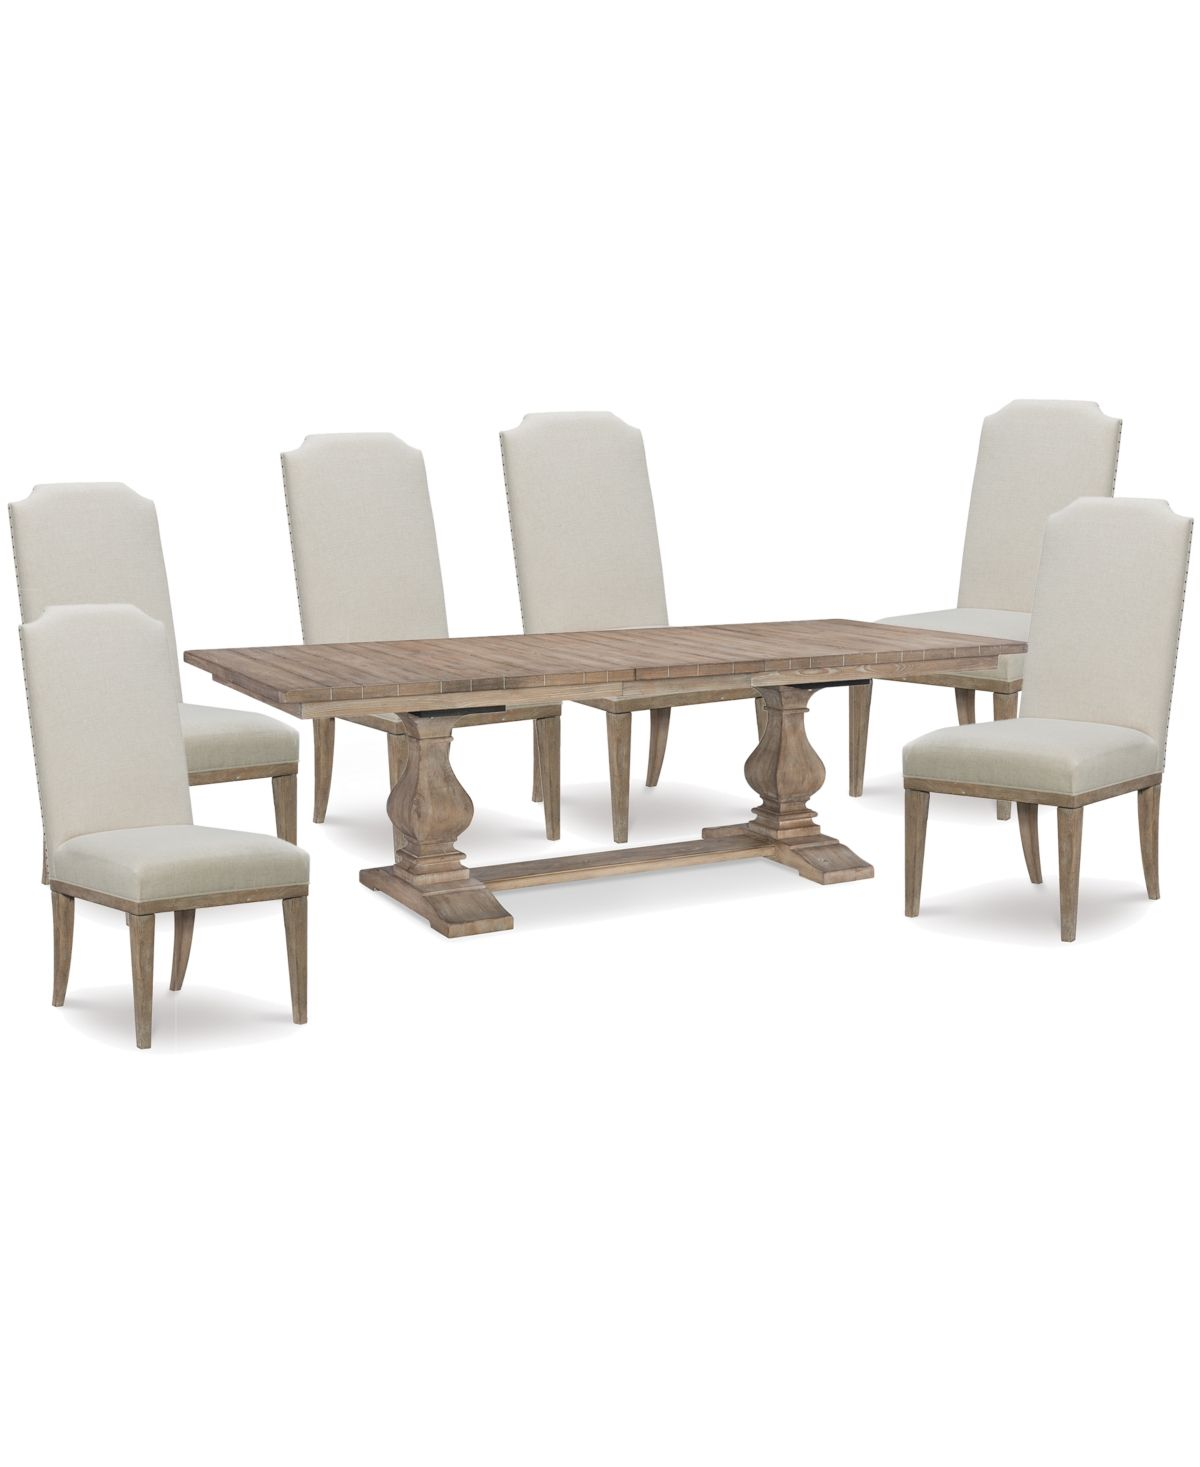 Furniture Rachael Ray Monteverdi Dining Furniture 7 Pc Set Table 6 Upholstered Side Chairs Reviews Furniture Macy S Dining Table Online Dining Table Furniture